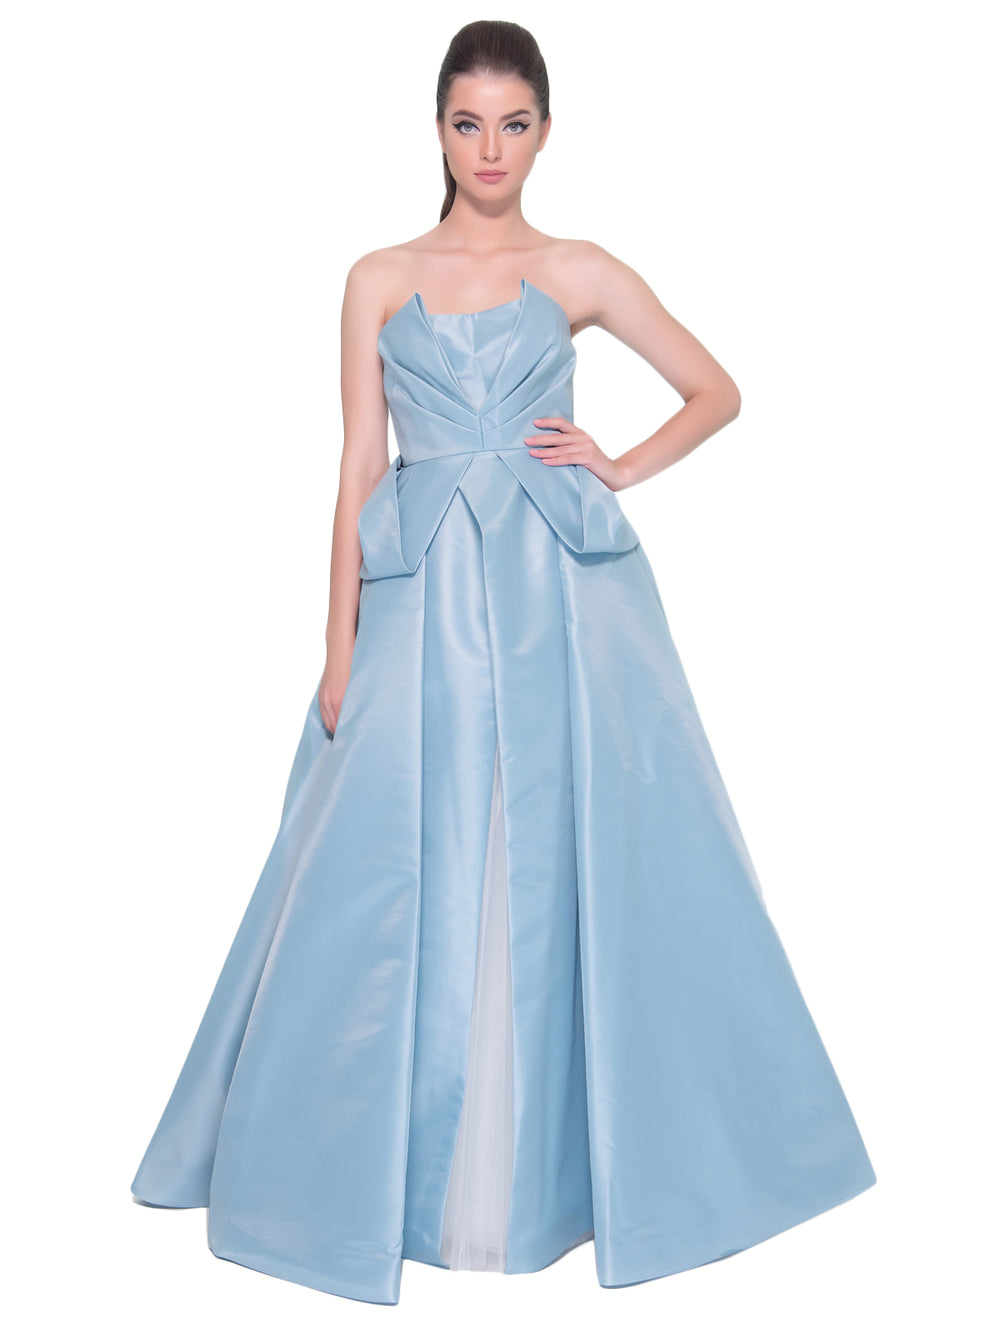 Powder Blue Taffeta Gown, DORIAN HO - elilhaam.com